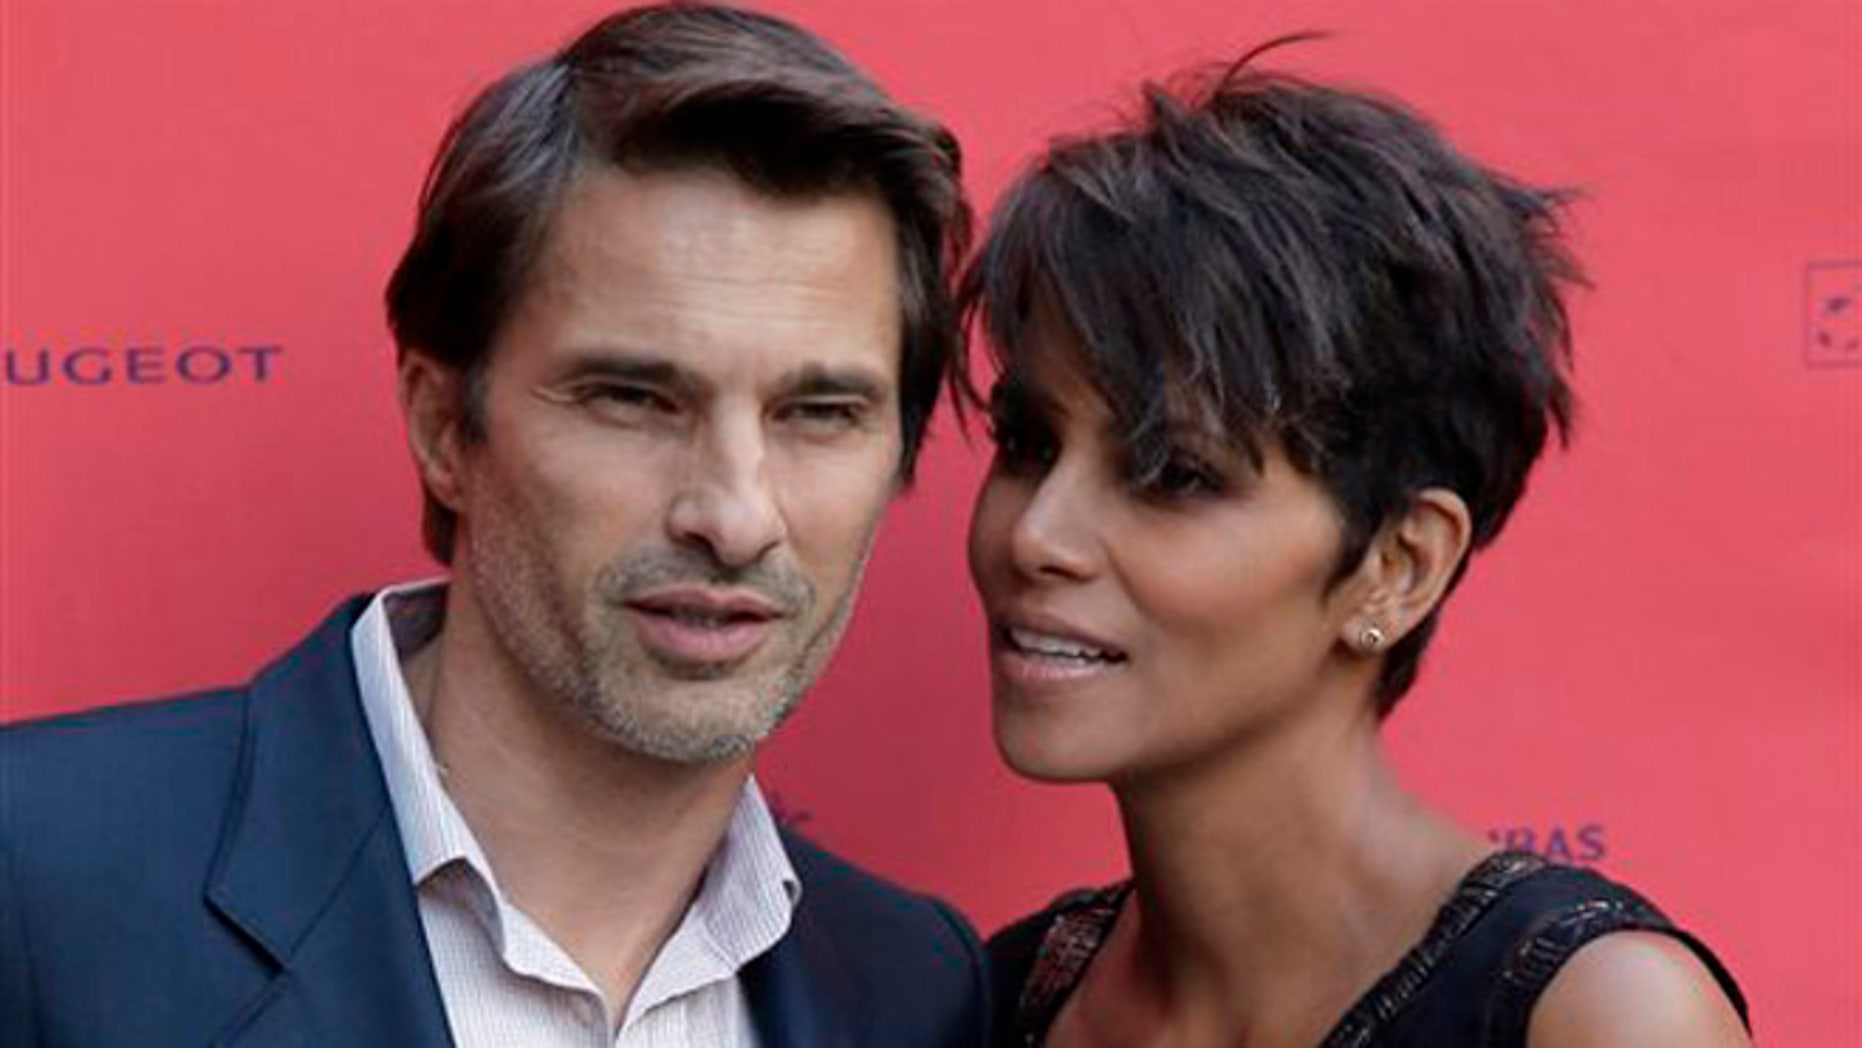 """FILE - In this June 13, 2013 file photo, actor and president of the Champs-Elysees Film Festival Olivier Martinez, left, poses with Actress Halle Berry prior to the screening of the film """"Things We Lost in the Fire"""" with the french title """"Nos Souvenirs Brules"""" during the Champs-Elysees Film Festival, at the """"Publicis Cinema"""" in Paris. Berry and Martinez are ending their two-year marriage. The couple released a joint statement Tuesday, Oct. 27, 2015, saying they plan to divorce. (AP Photo/Francois Mori, File)"""